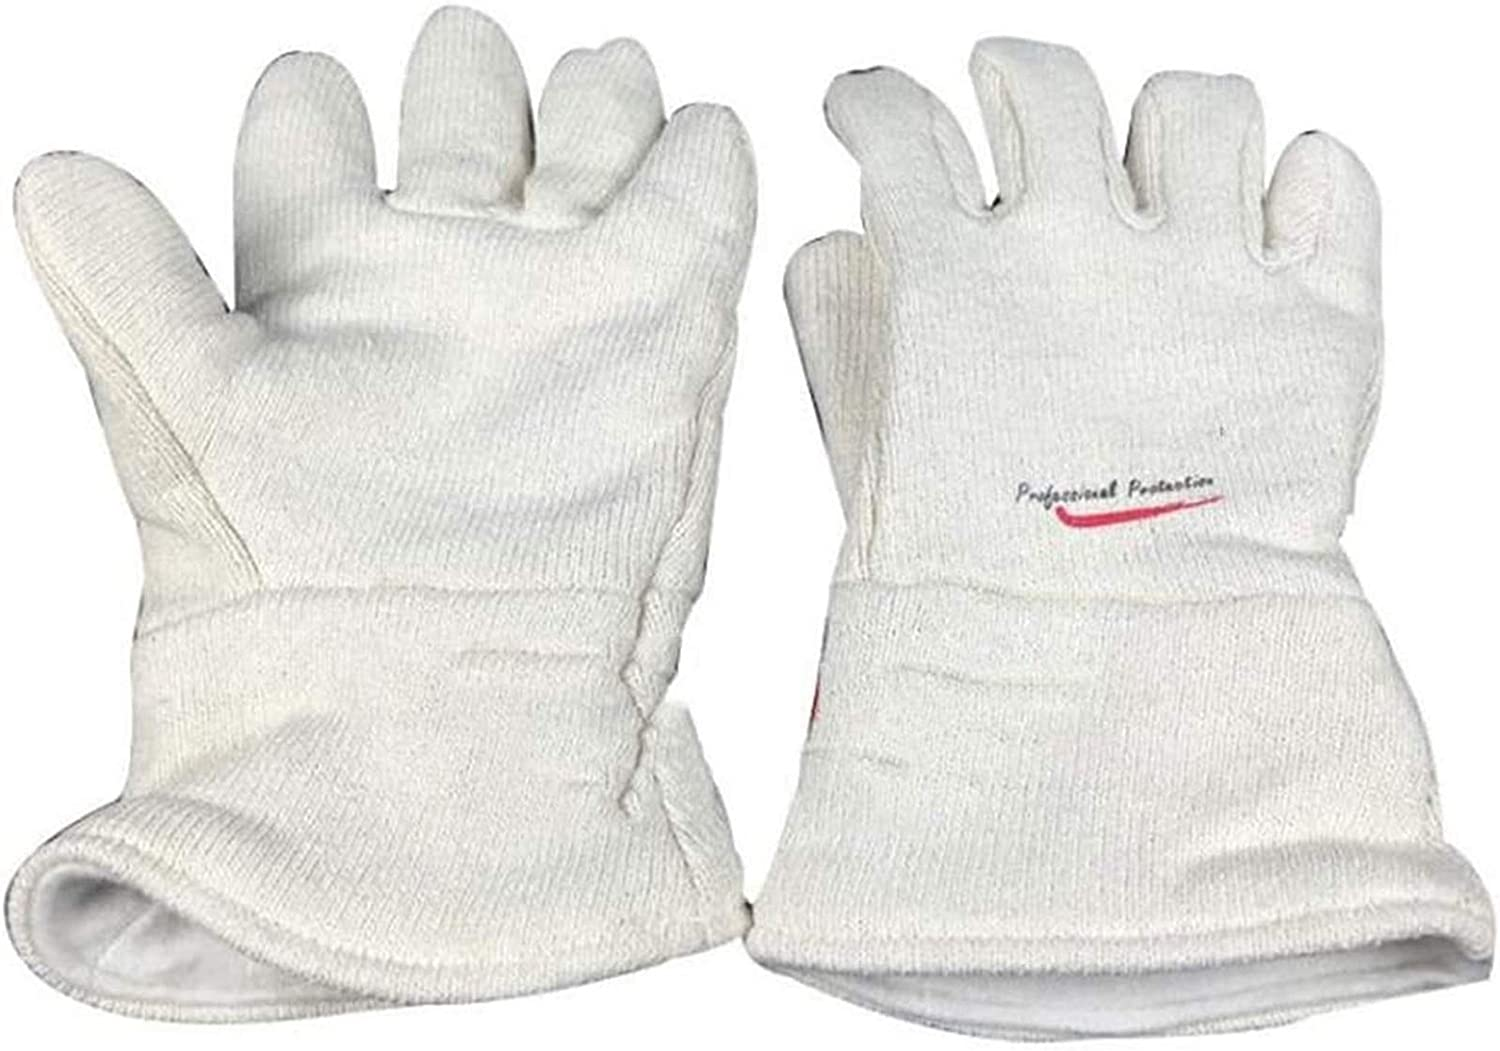 WFSH Portland Mall Safety Work Gloves All items in the store High L 200° Temperature Resistant